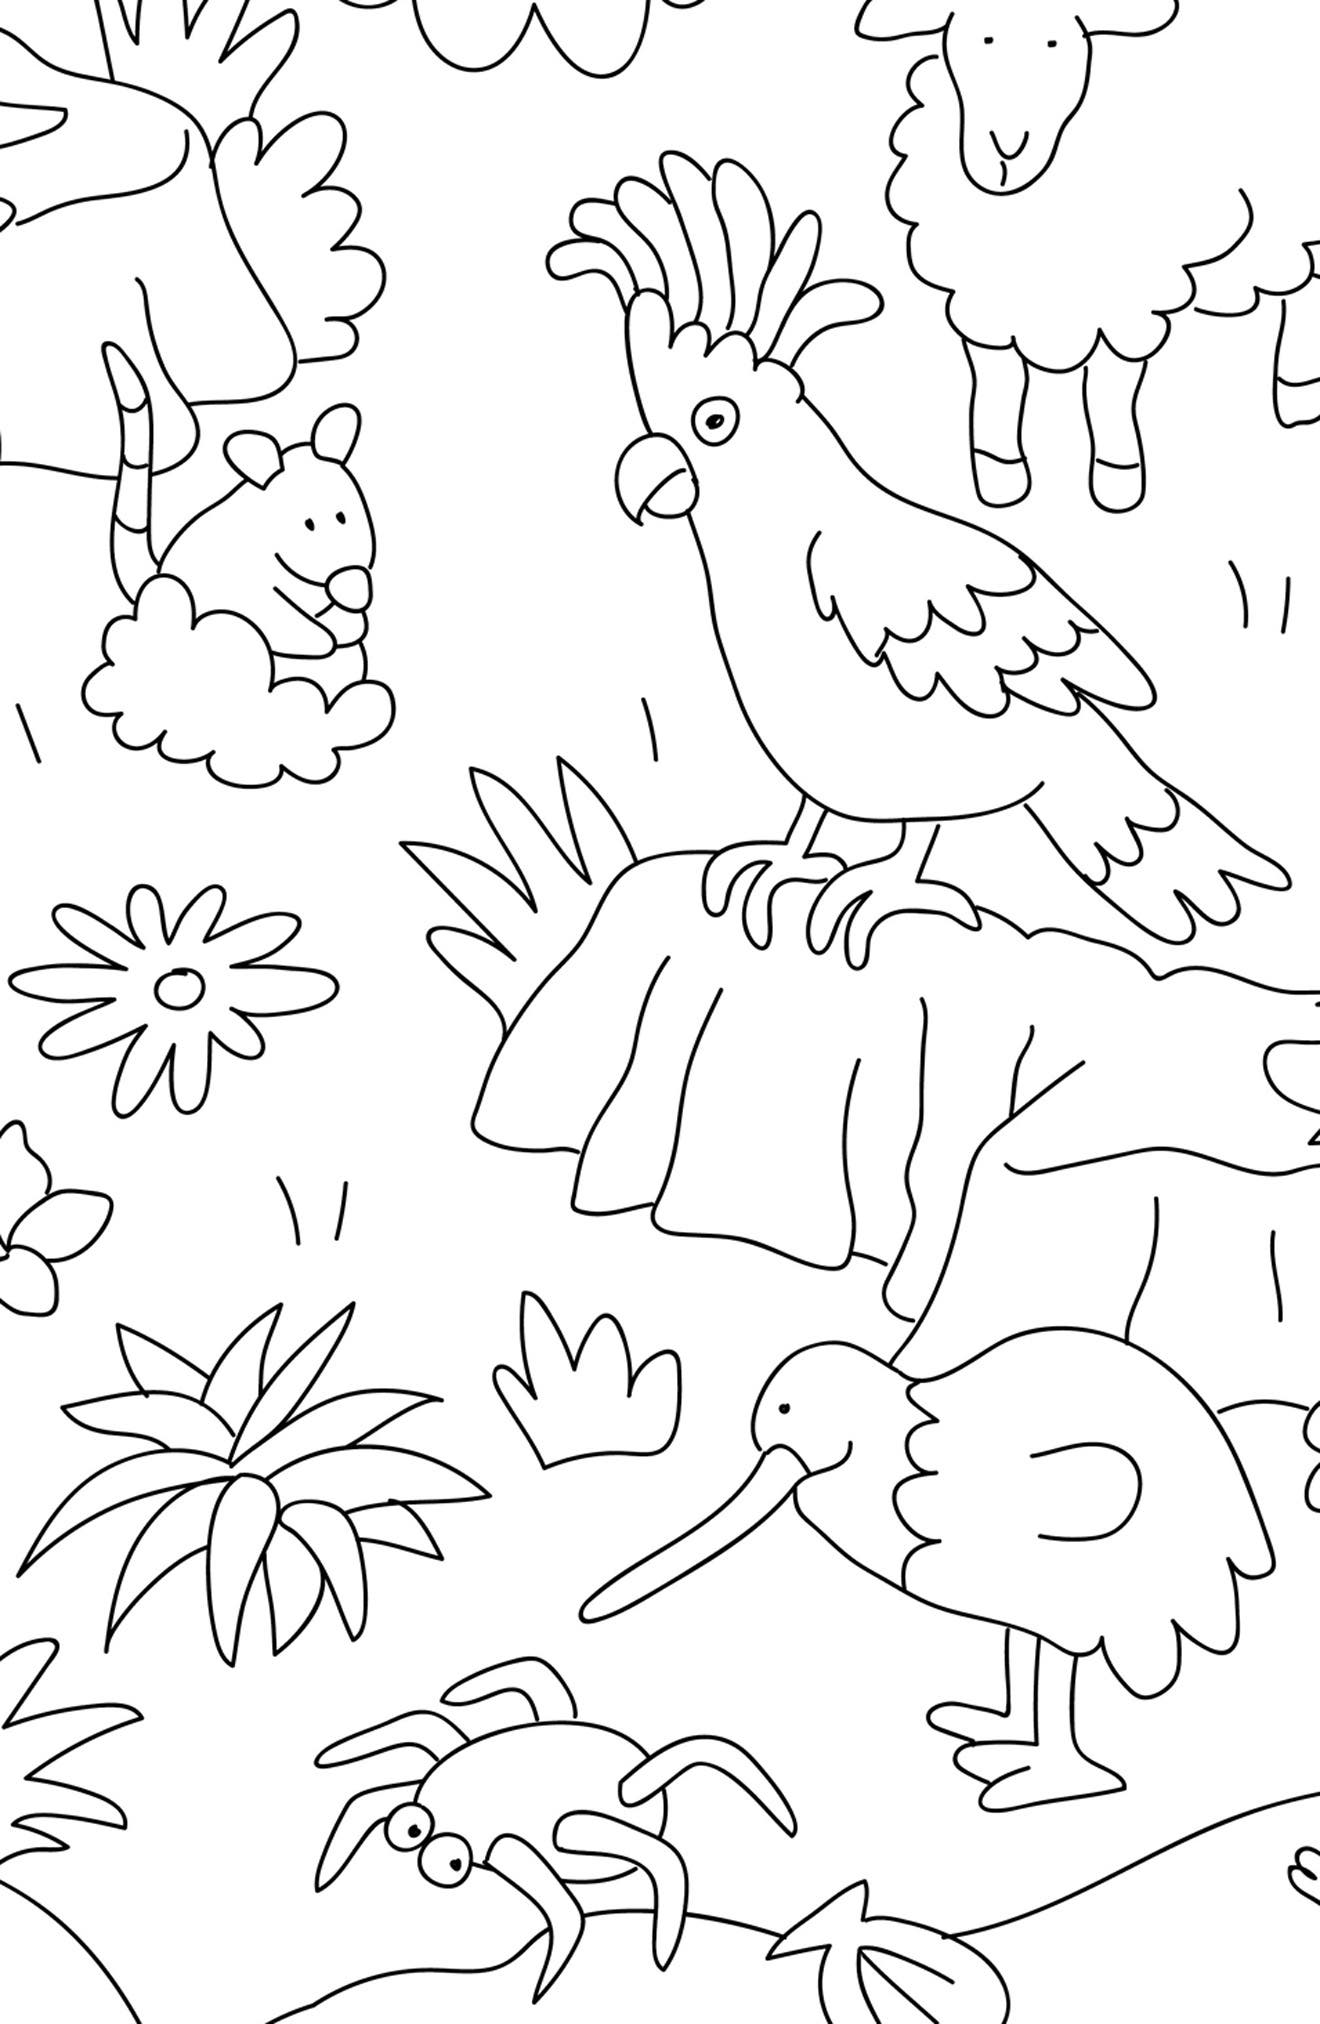 Set of 24 Animals Coloring Placemats,                             Alternate thumbnail 3, color,                             100